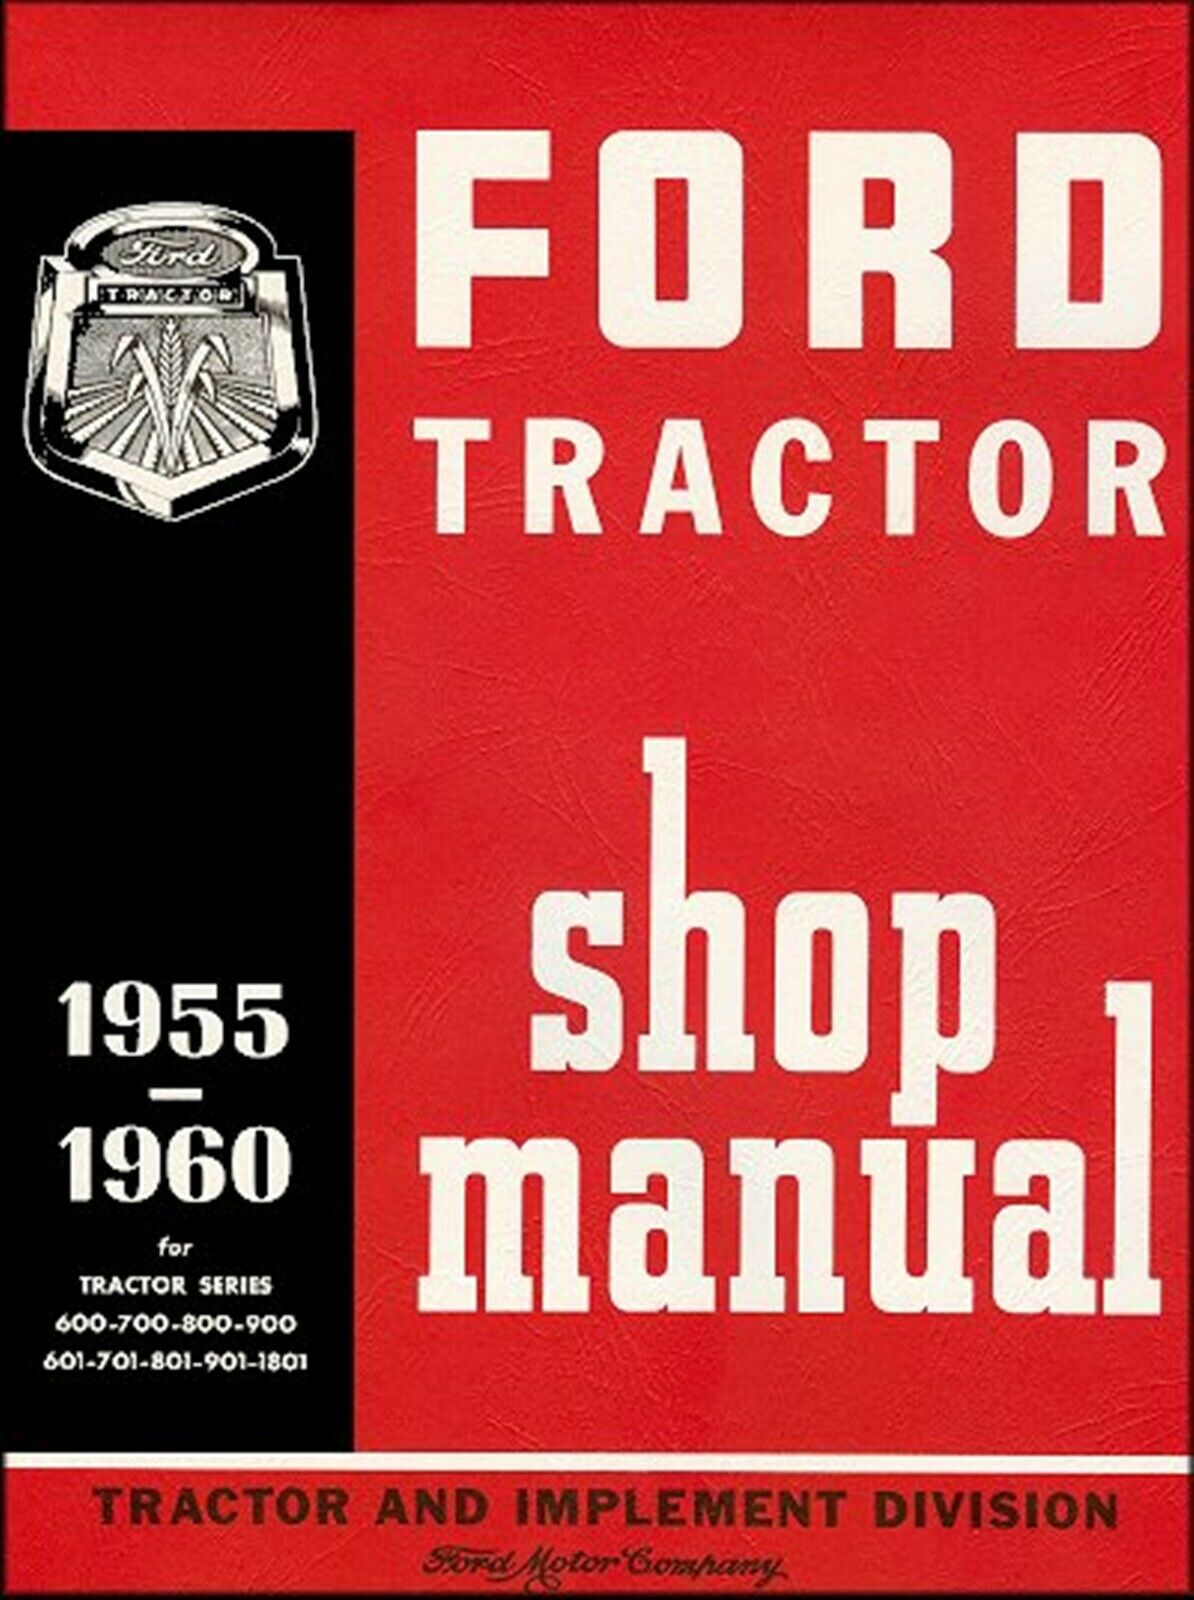 Ford Tractor Shop Manual 1955-1960